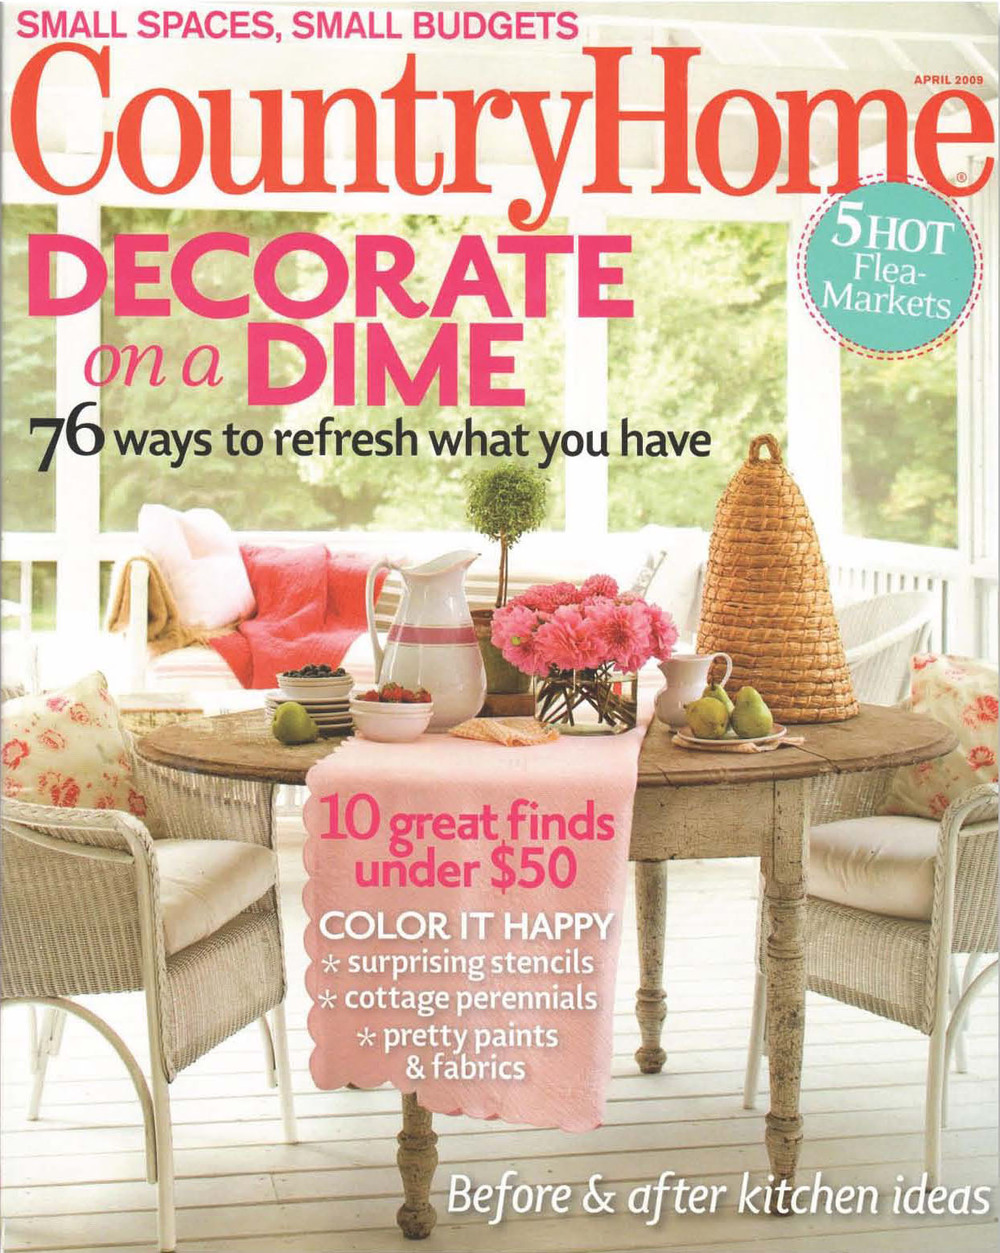 Country Home Magazine redesign, 2008